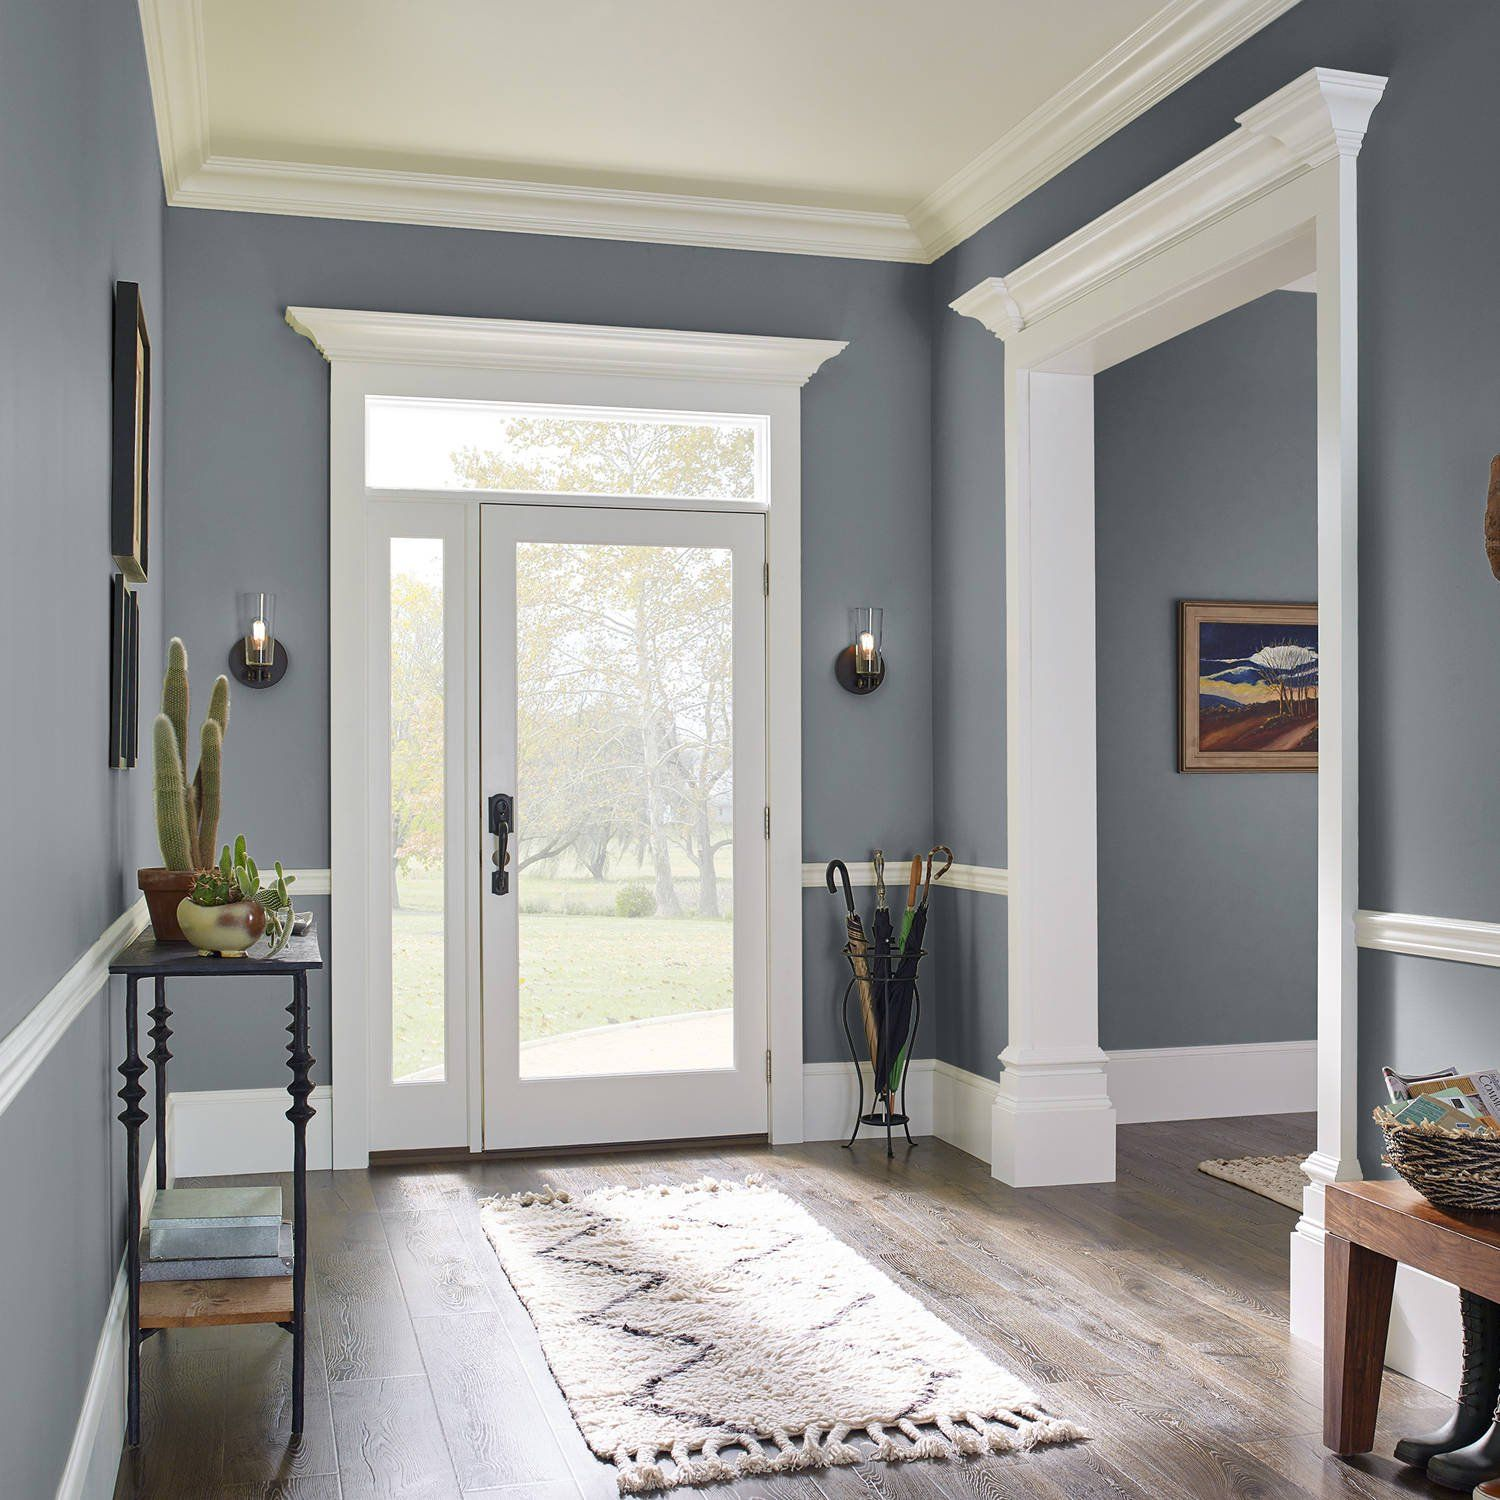 Murky Depths Kilz Complete Coat Interior Exterior Paint Primer In One Rm140 Walmart Com In 2021 Paint Colors For Home Paint Colors For Living Room Room Paint Colors